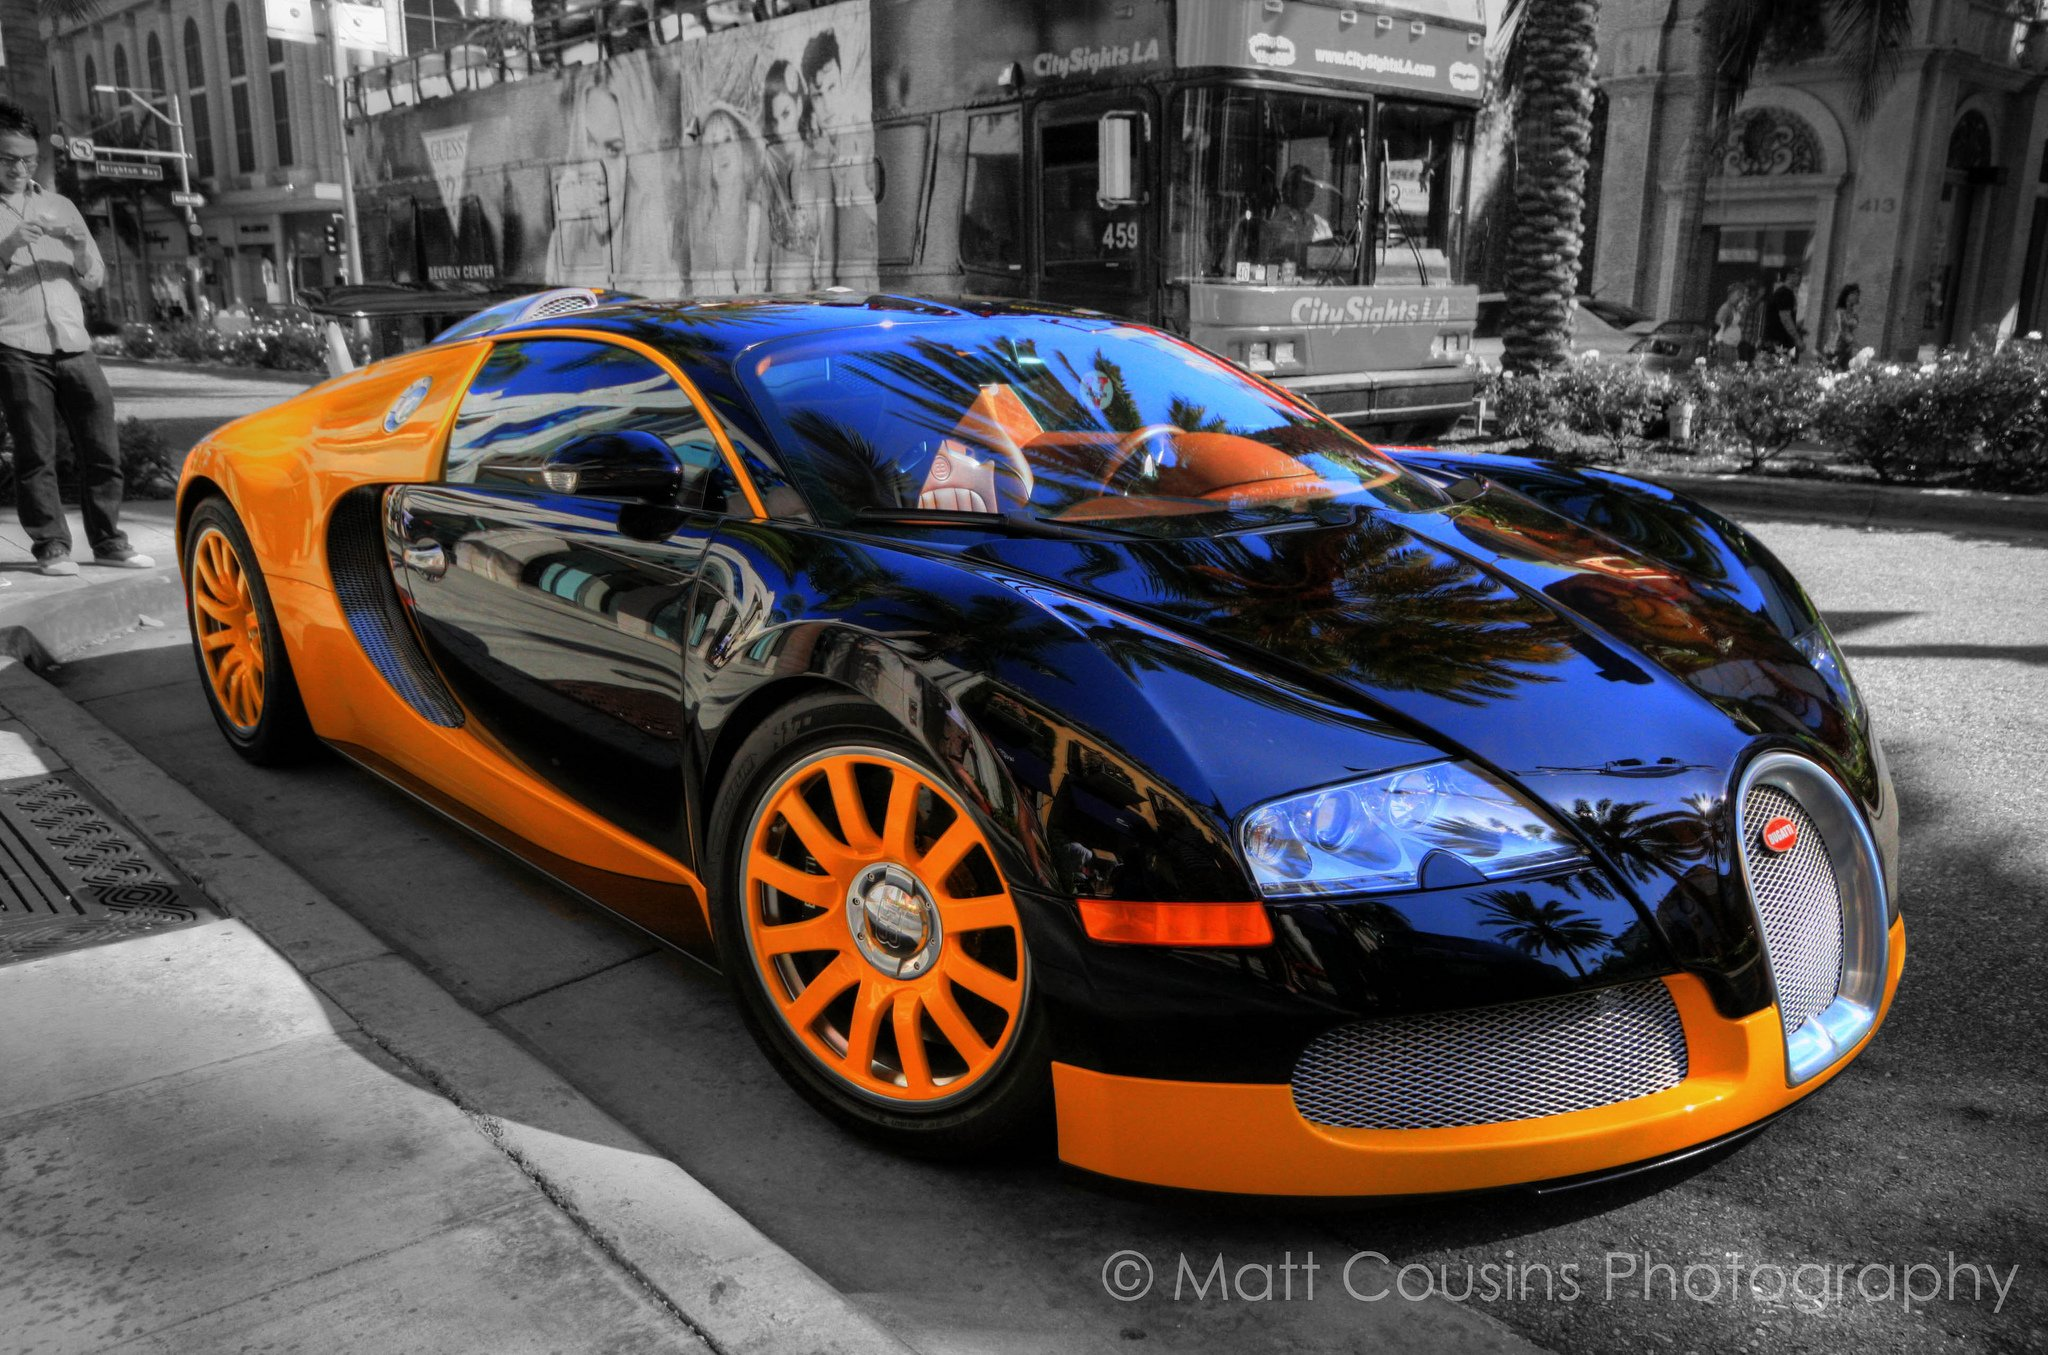 Bugatti Exotic supercars Veyron orange wallpaper 2048x1355 432400 2048x1355